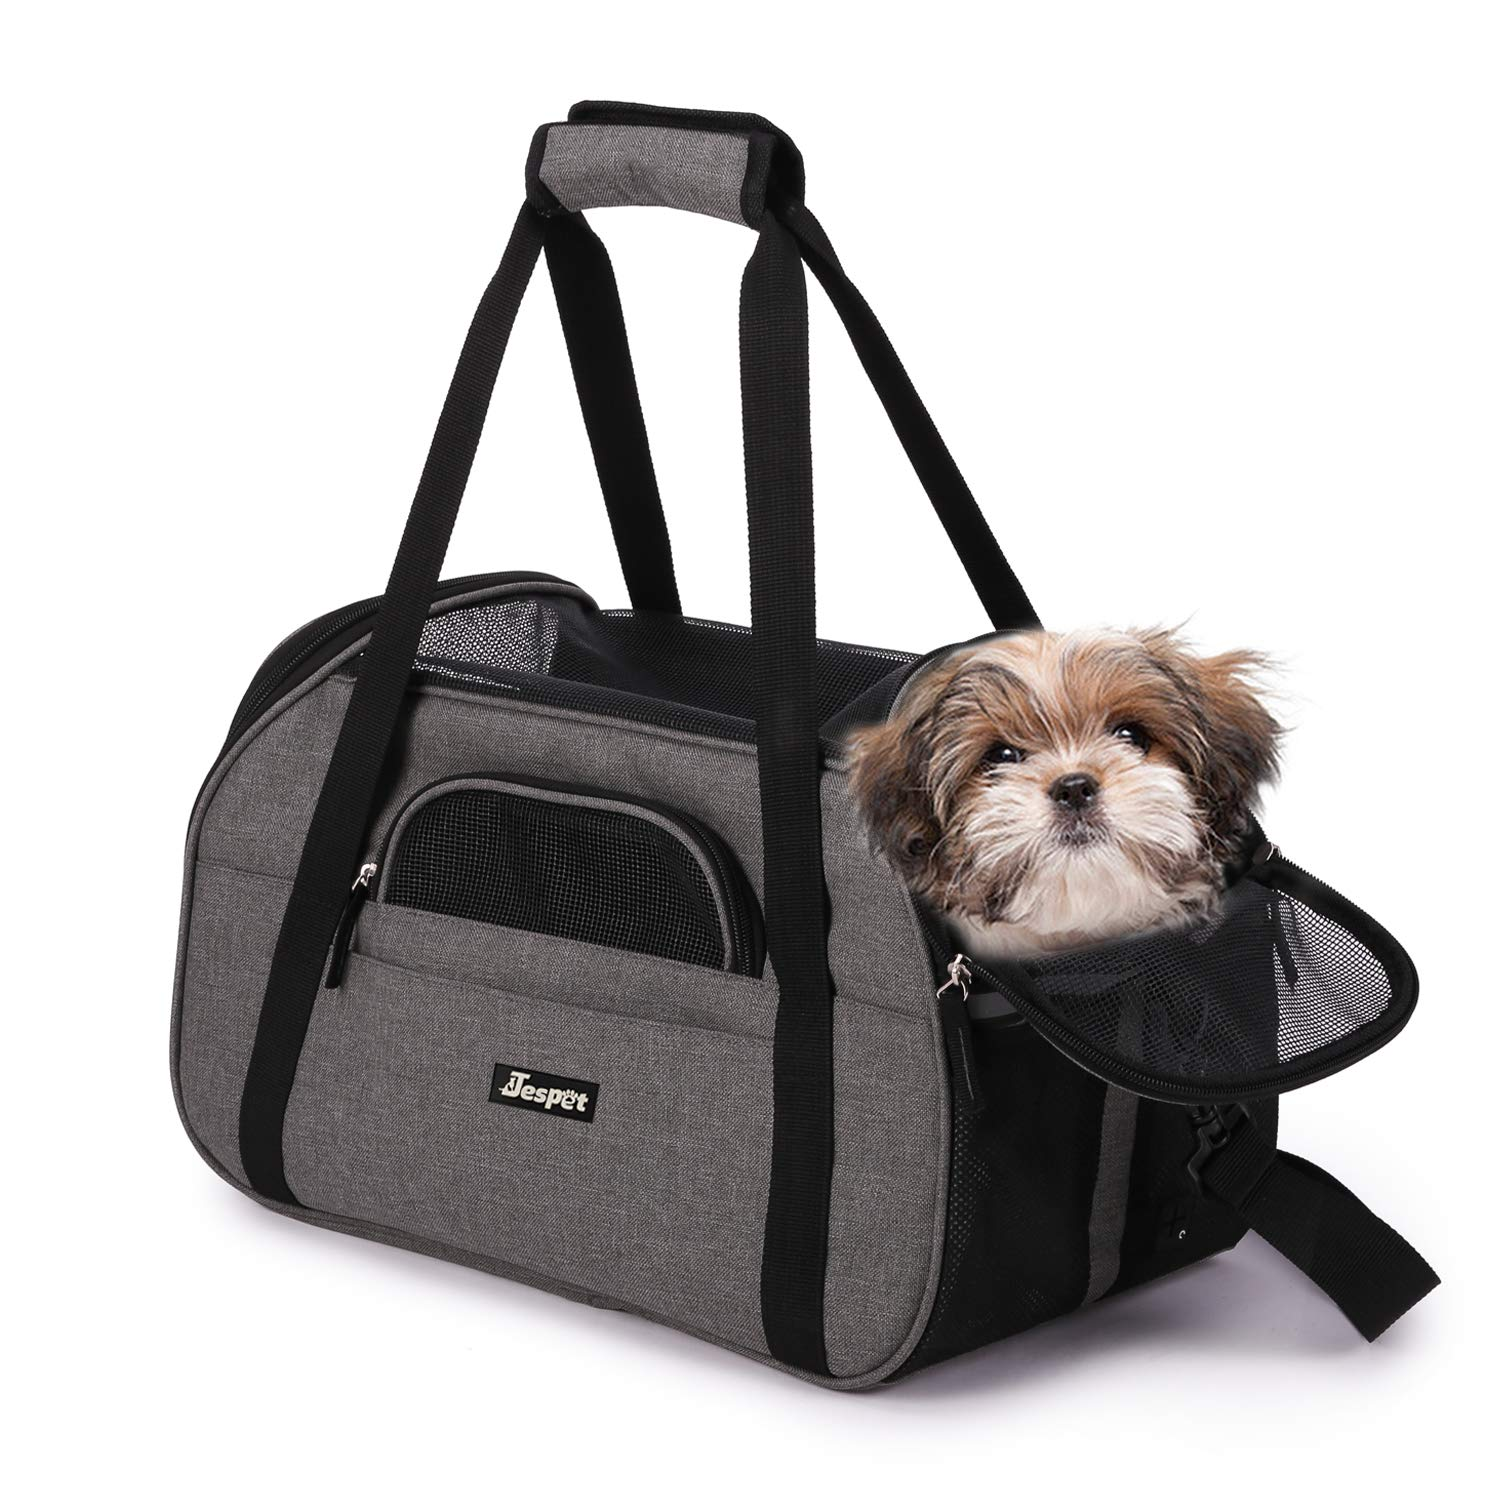 Jespet Soft Pet Carrier for Small Dogs, Cats, Puppy, 17'' Airline Approved Portable Carrier Bag for Airline, Train, Car Travel, Smoke Gray by JESPET